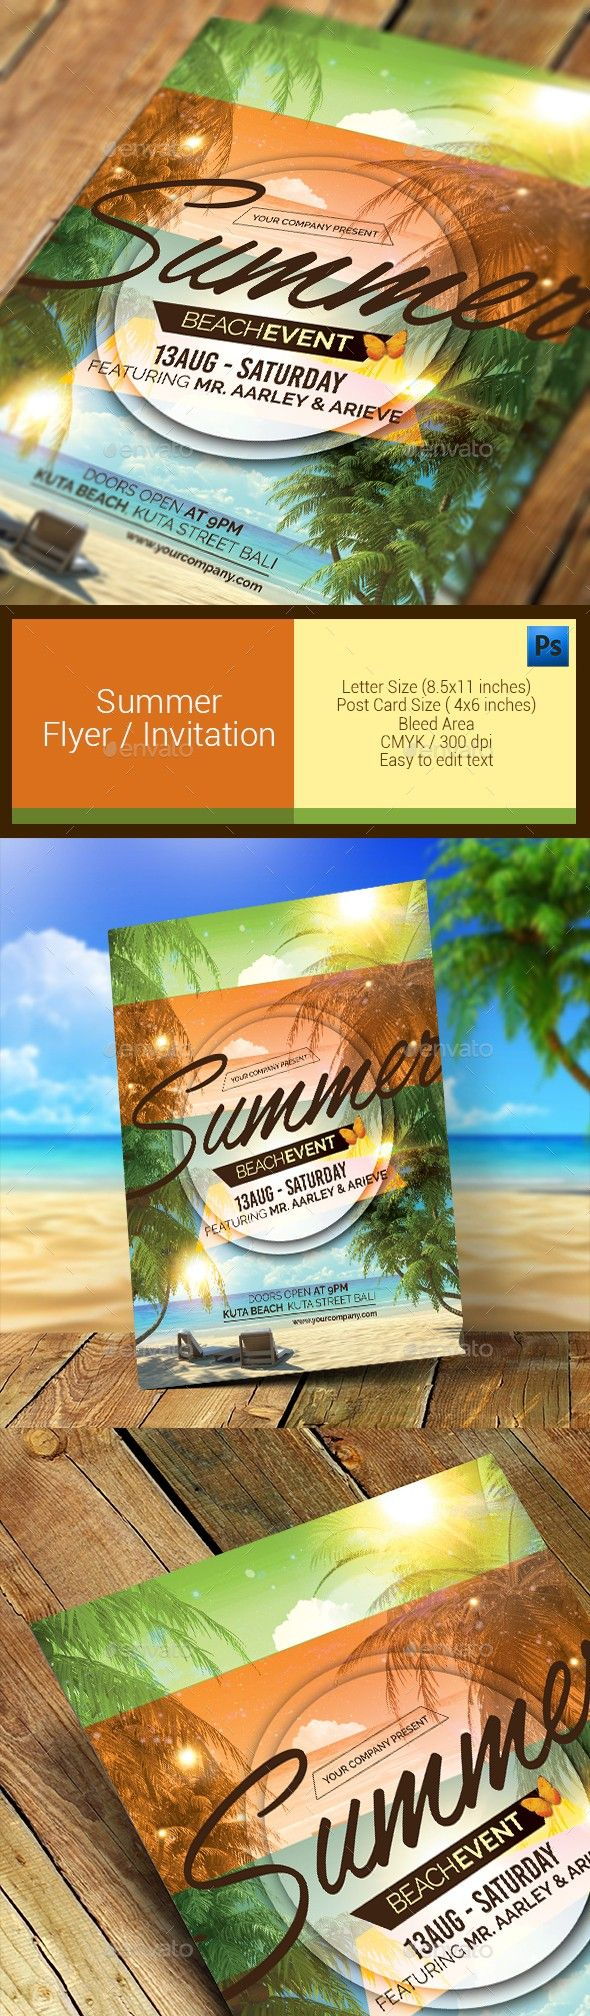 beach, flyer, flyer template, holiday, invitation, pool